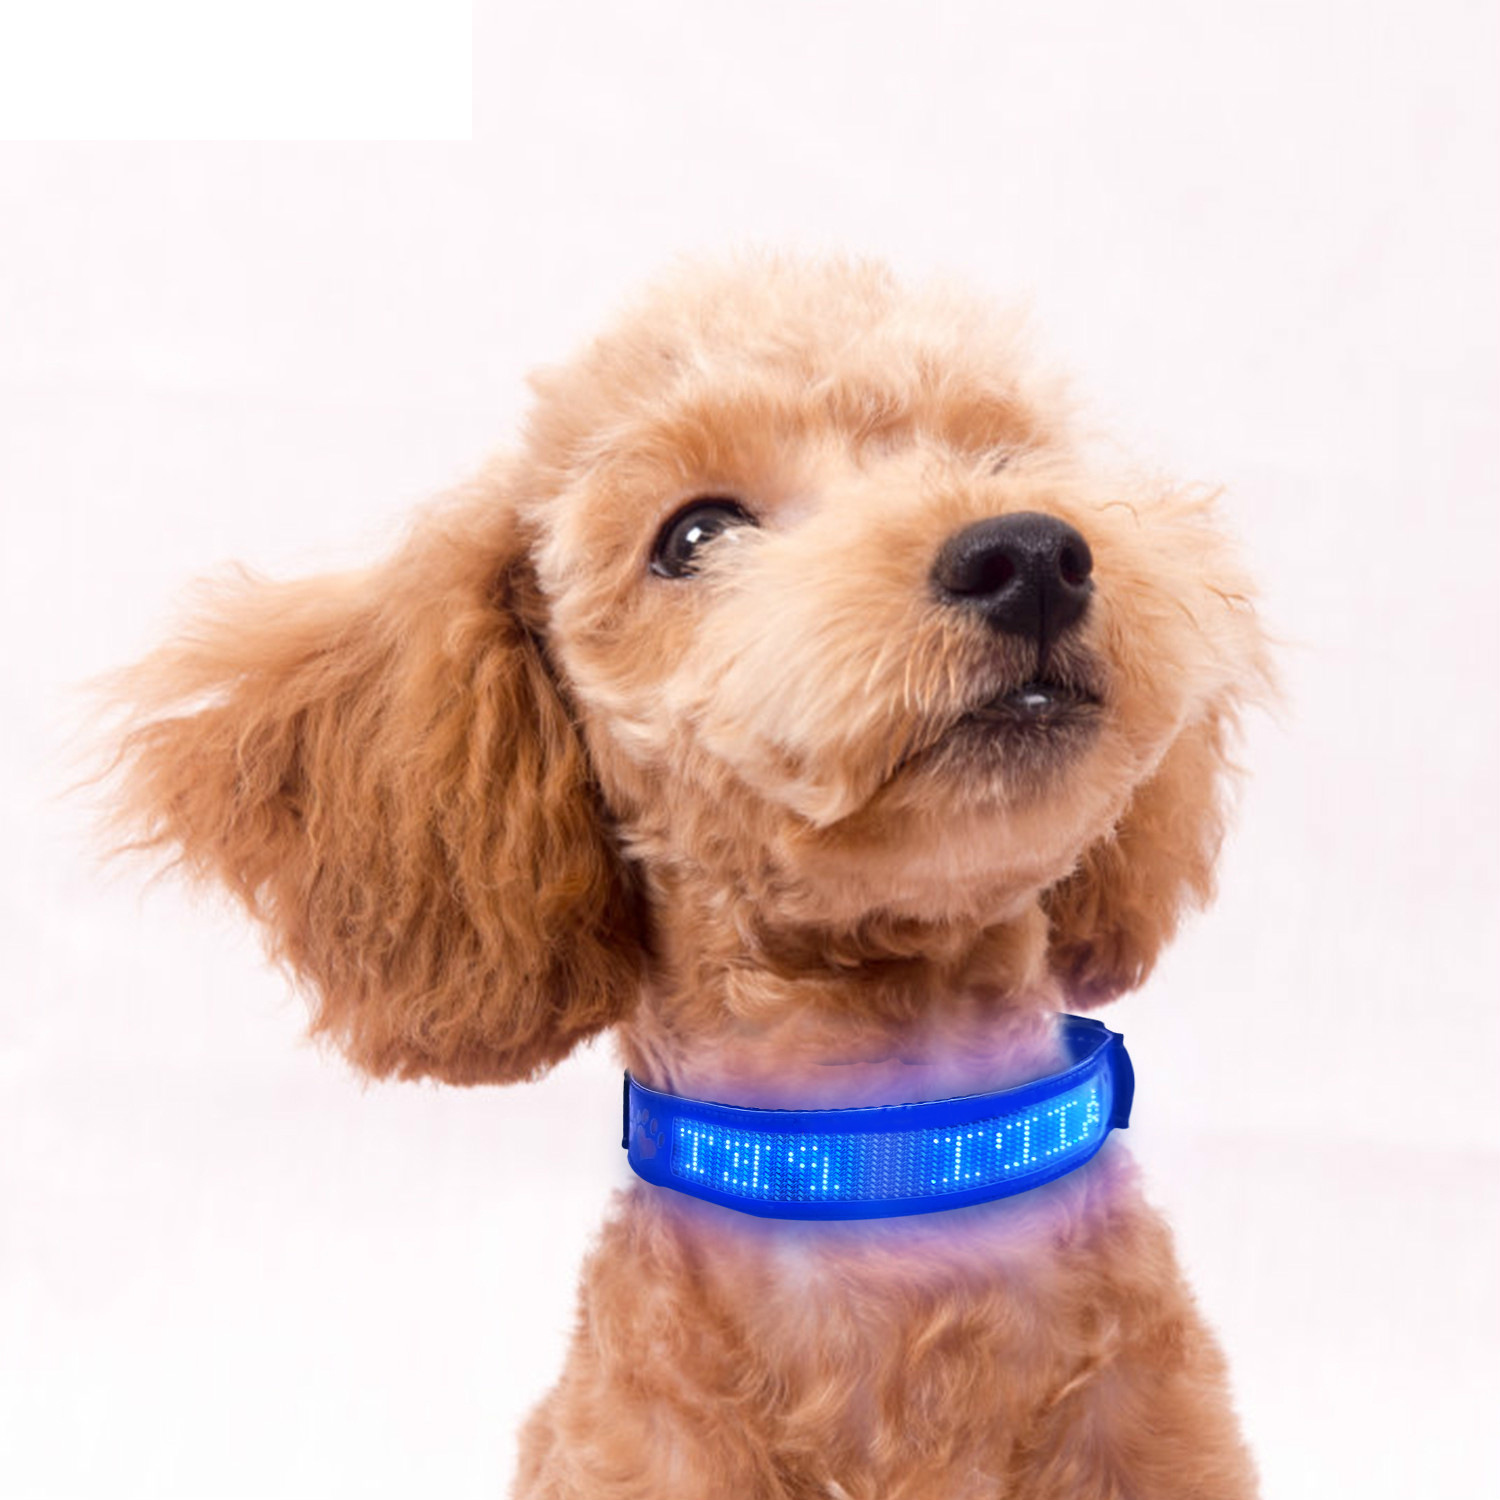 【New Year Promotion】Led Screen Pets Safety Collar